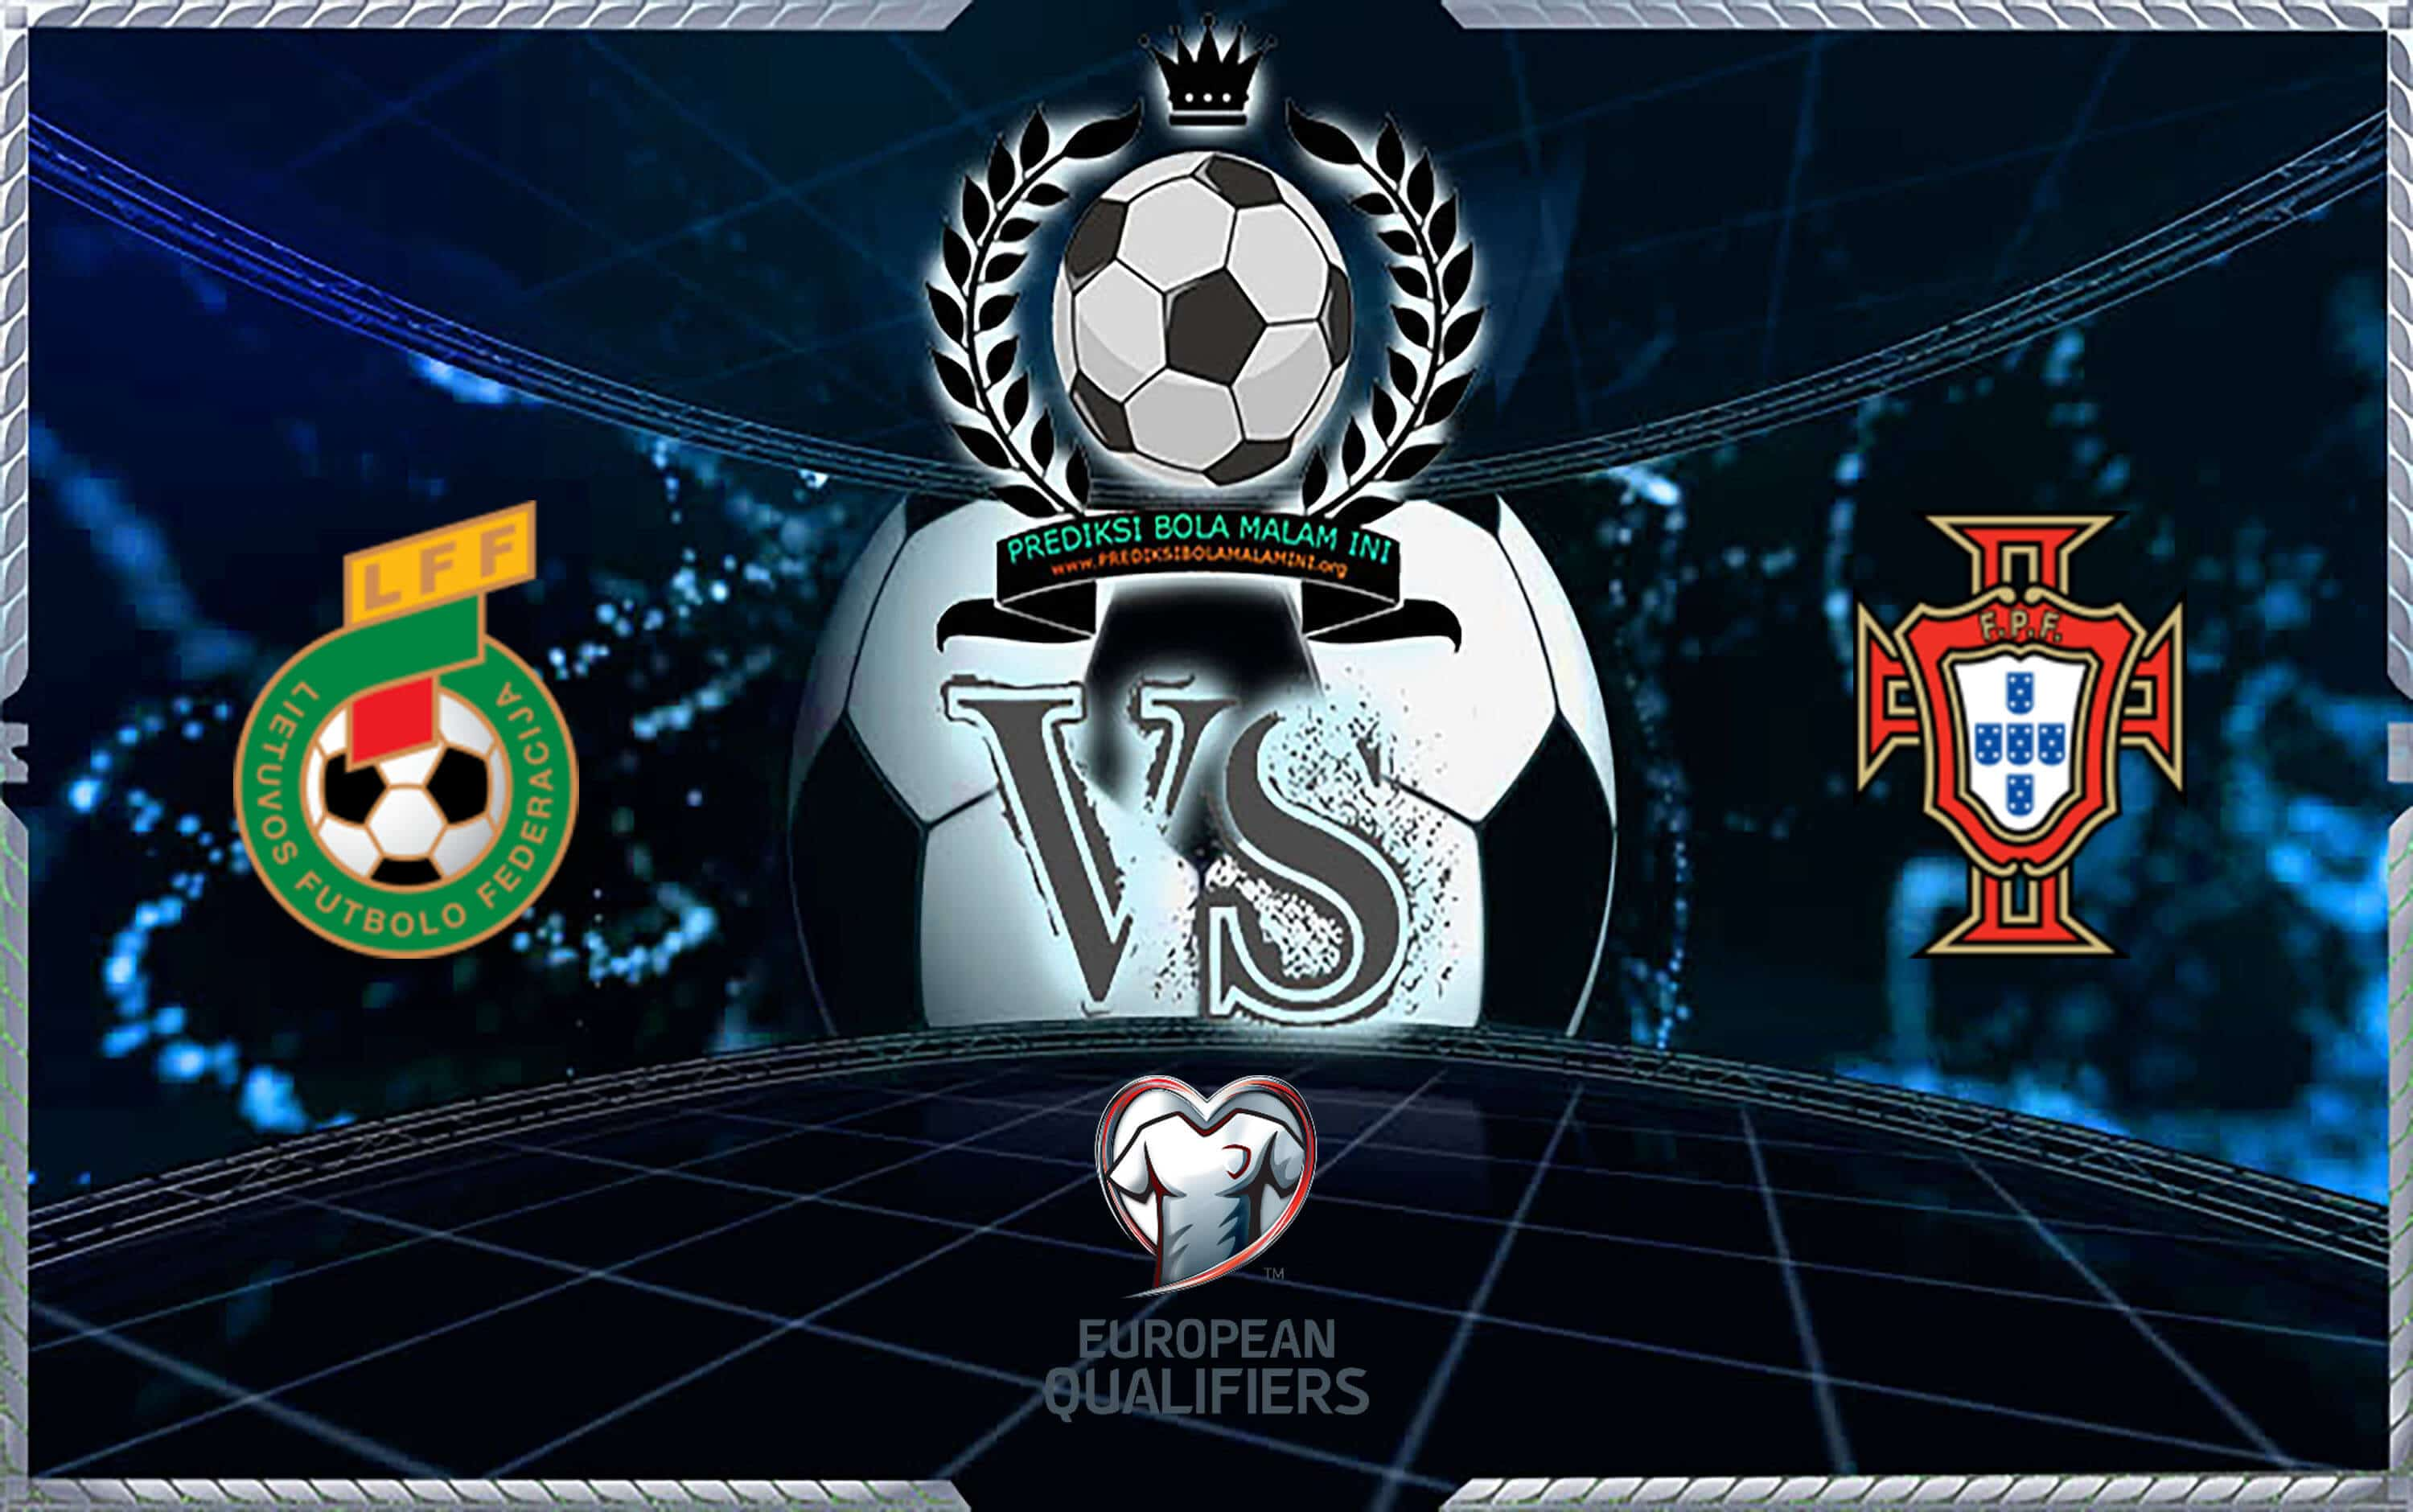 "Prediksi Skor Lithuania vs Portugal 11 September 2019 ""width ="" 3000 ""height ="" 1880 ""/> </p> <p> <span style="